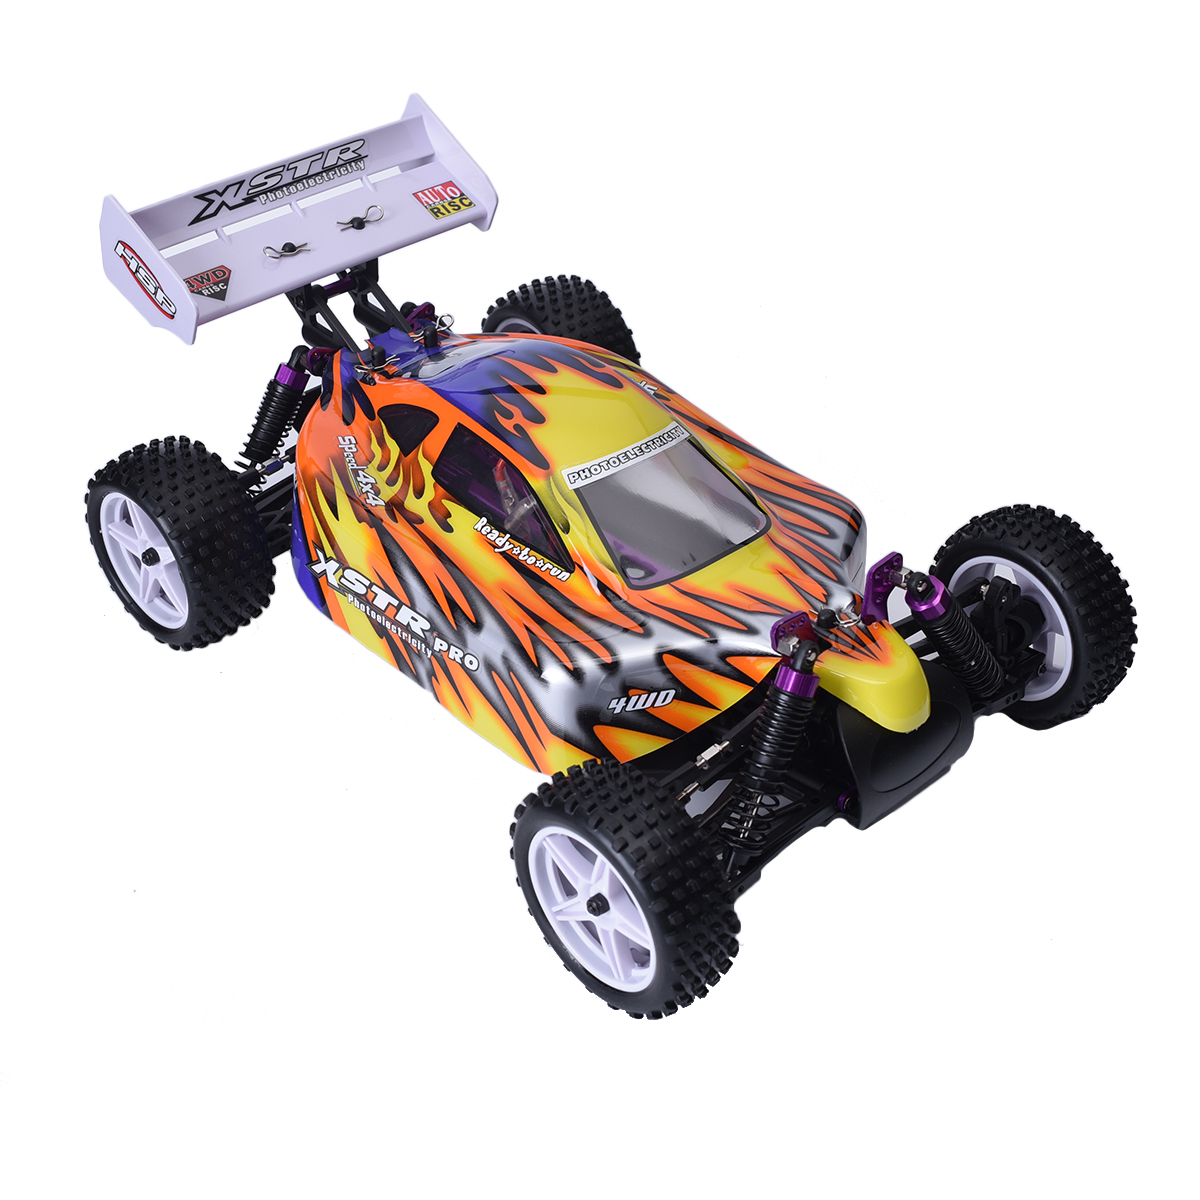 Hsp 1 10 scale rc buggy 94107 electric 2 4ghz 4wd off road for Rc electric motor oil